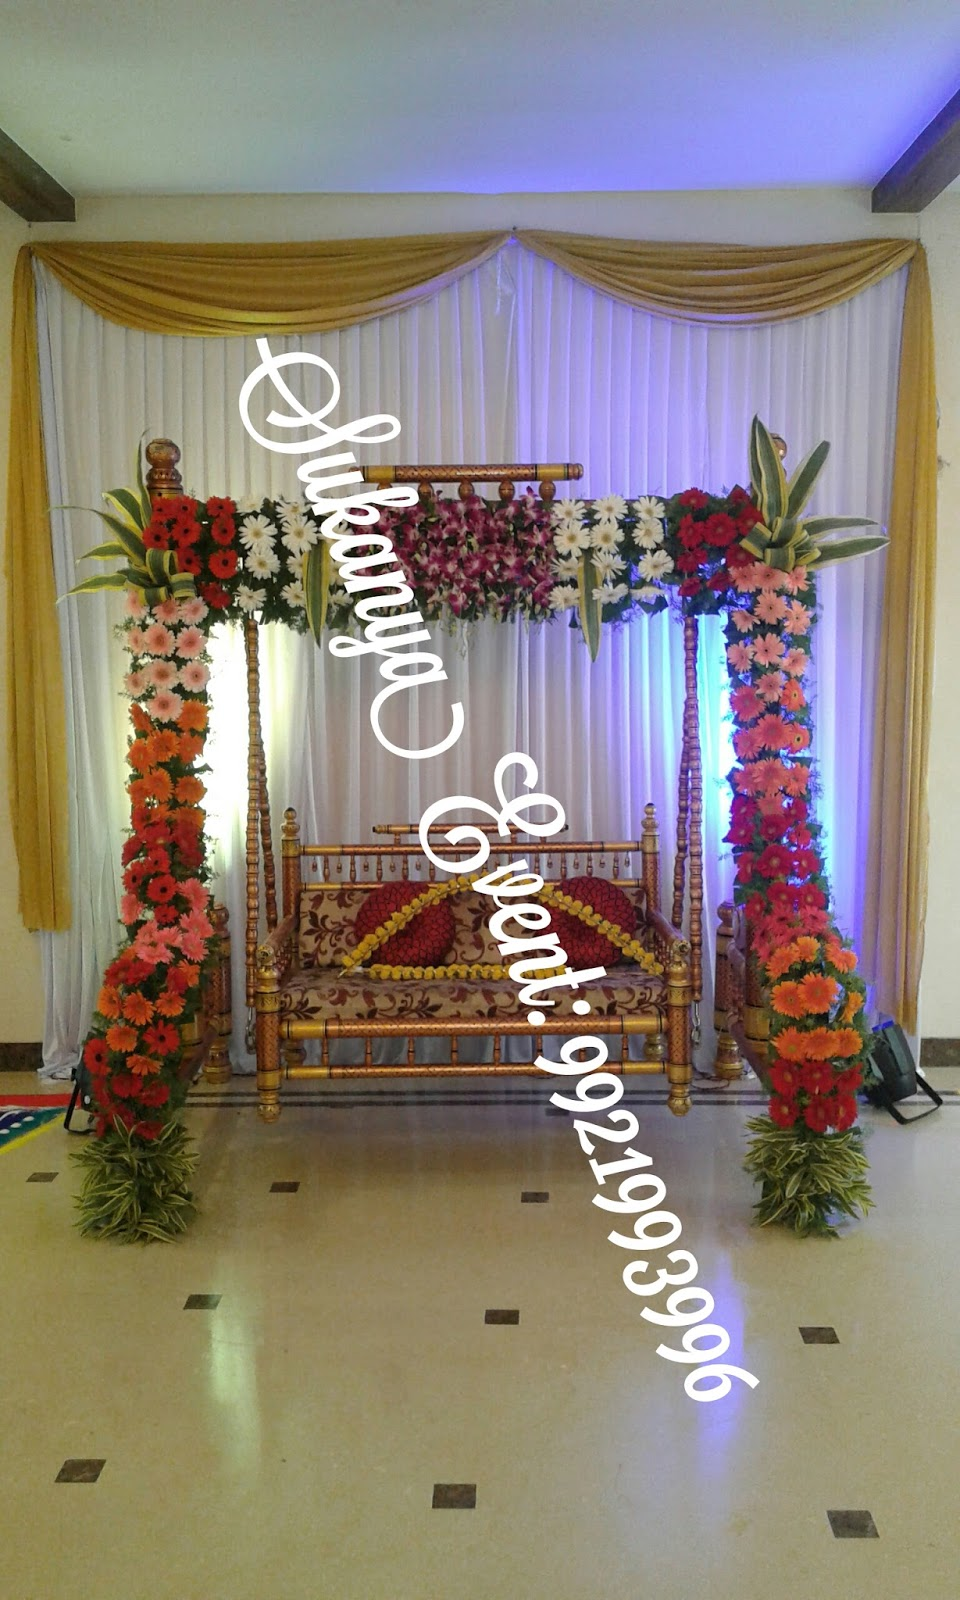 dohale jevan best decoration from sukanya event   dohale jevan best decoration from sukanya